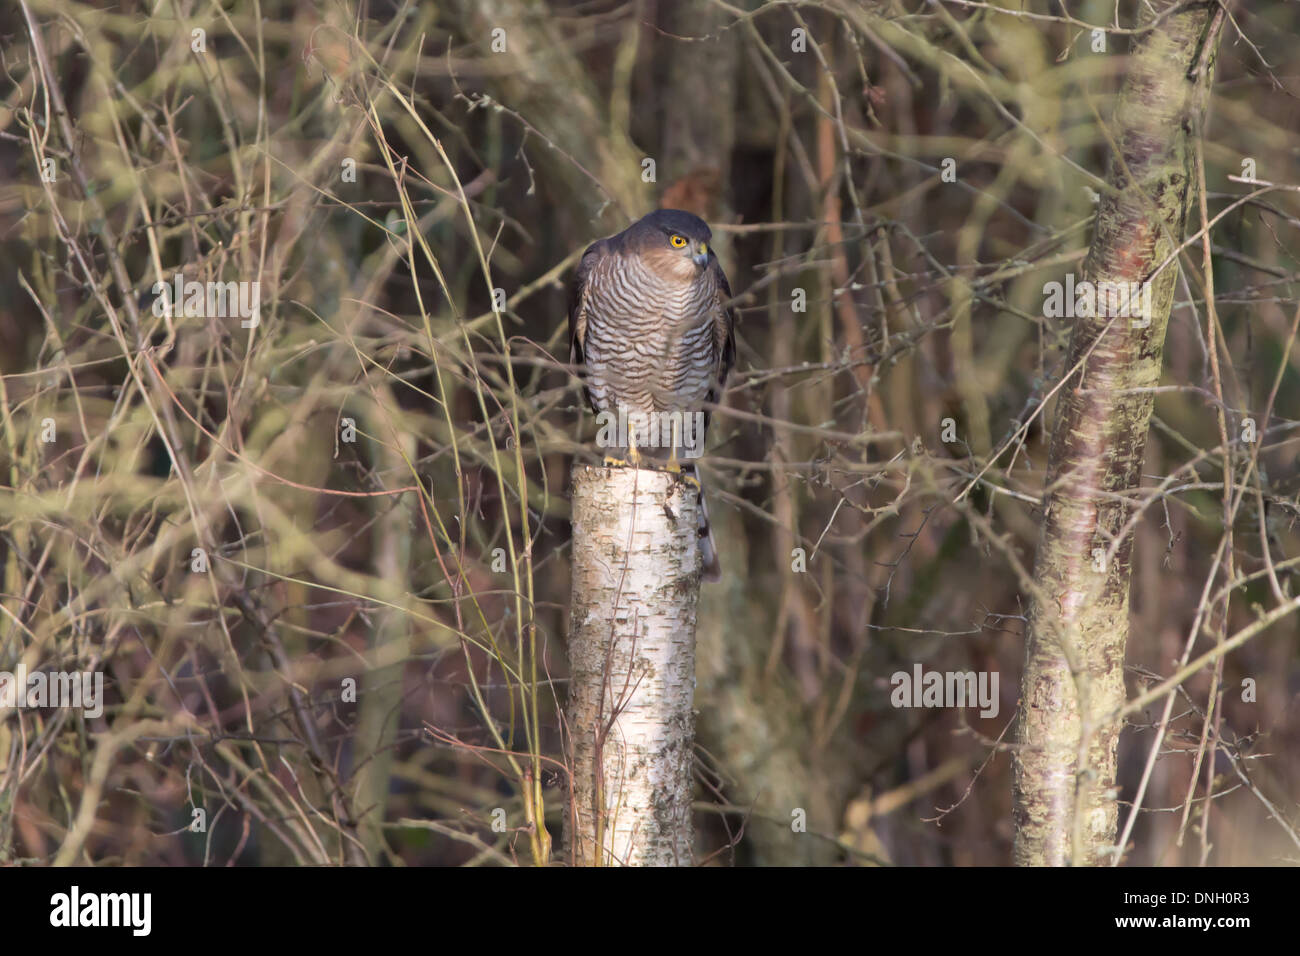 Male sparrowhawk (Accipter nisus) perched in woodland. Surrey, UK. Stock Photo